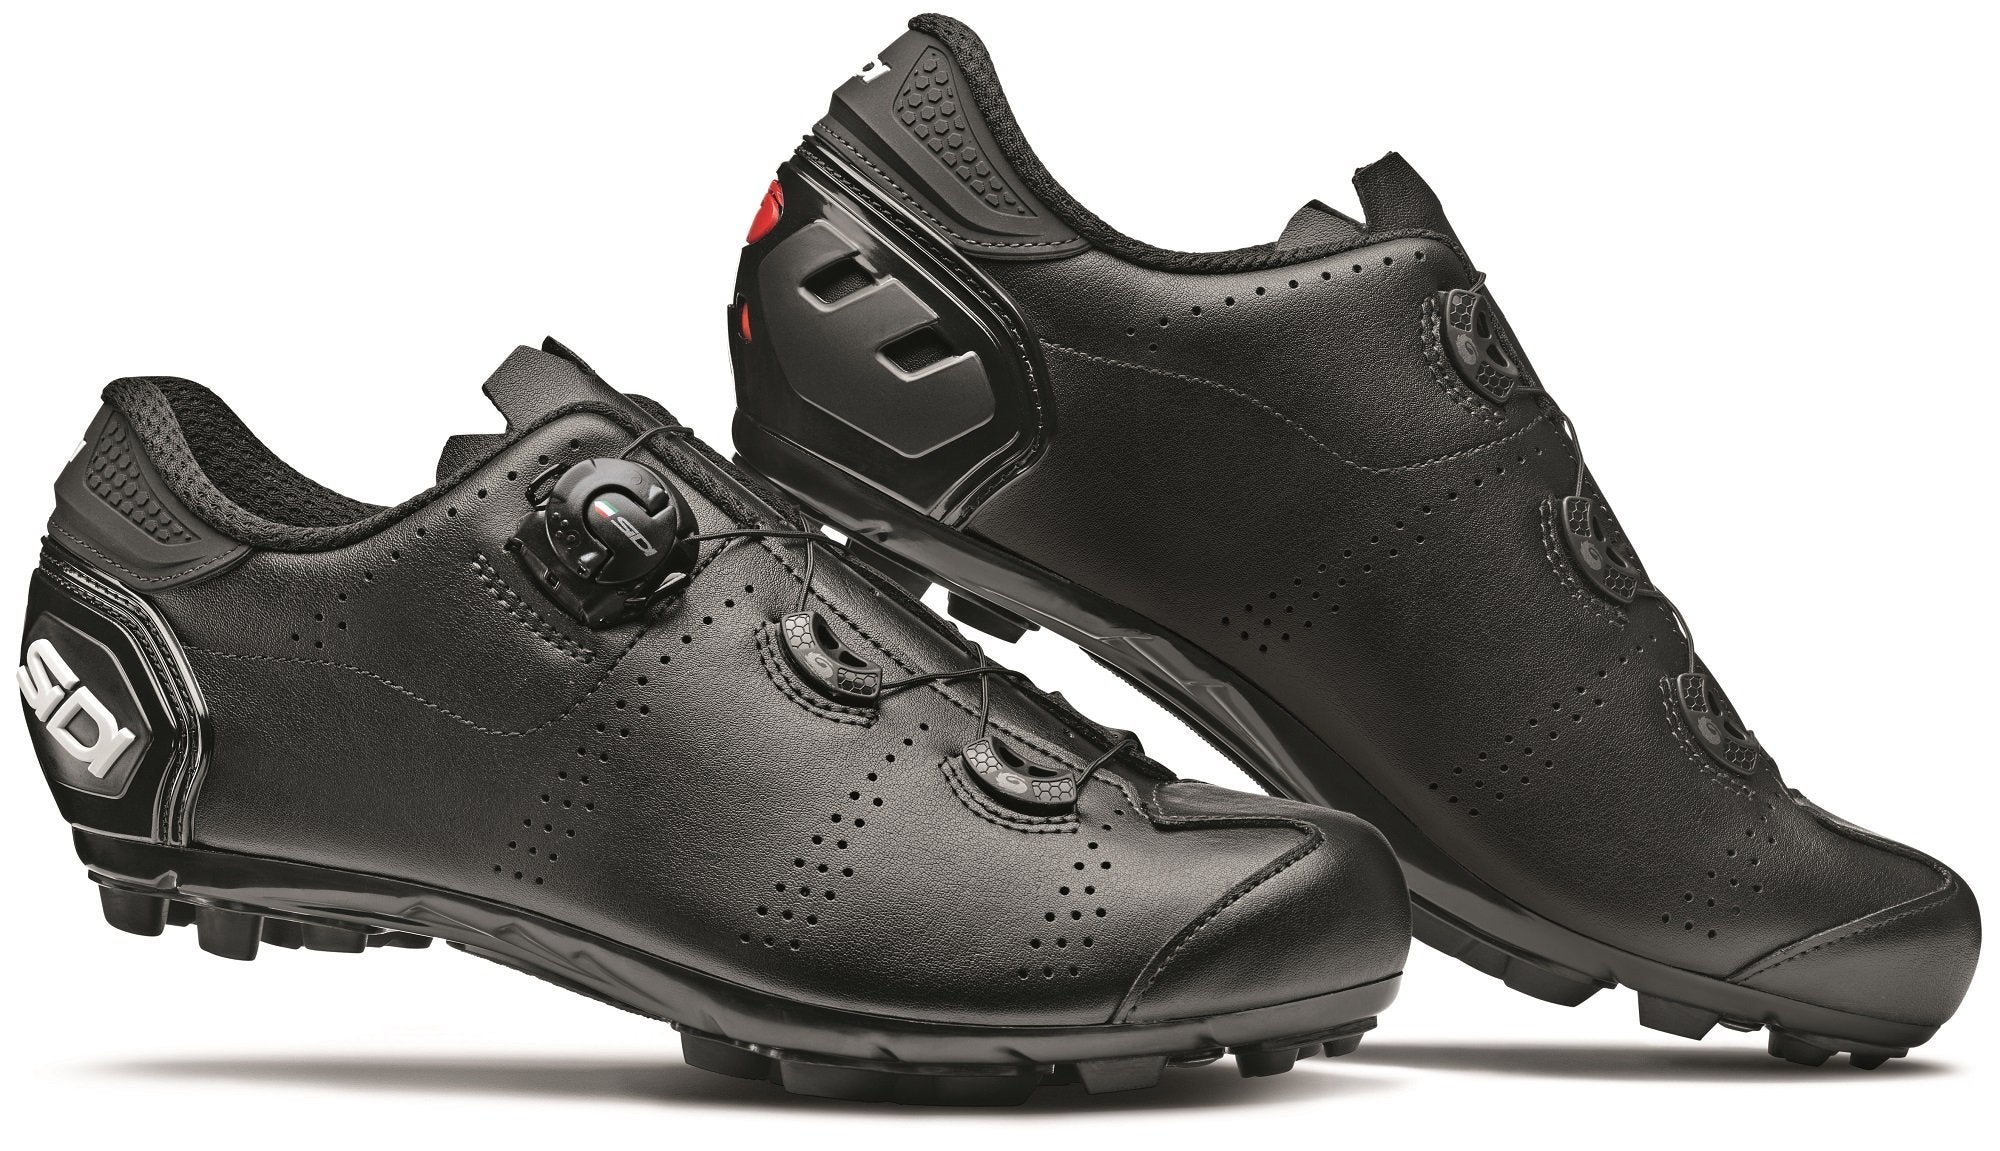 Sidi-Sidi Speed Mountain Bike Shoes - Action Athlete Supply